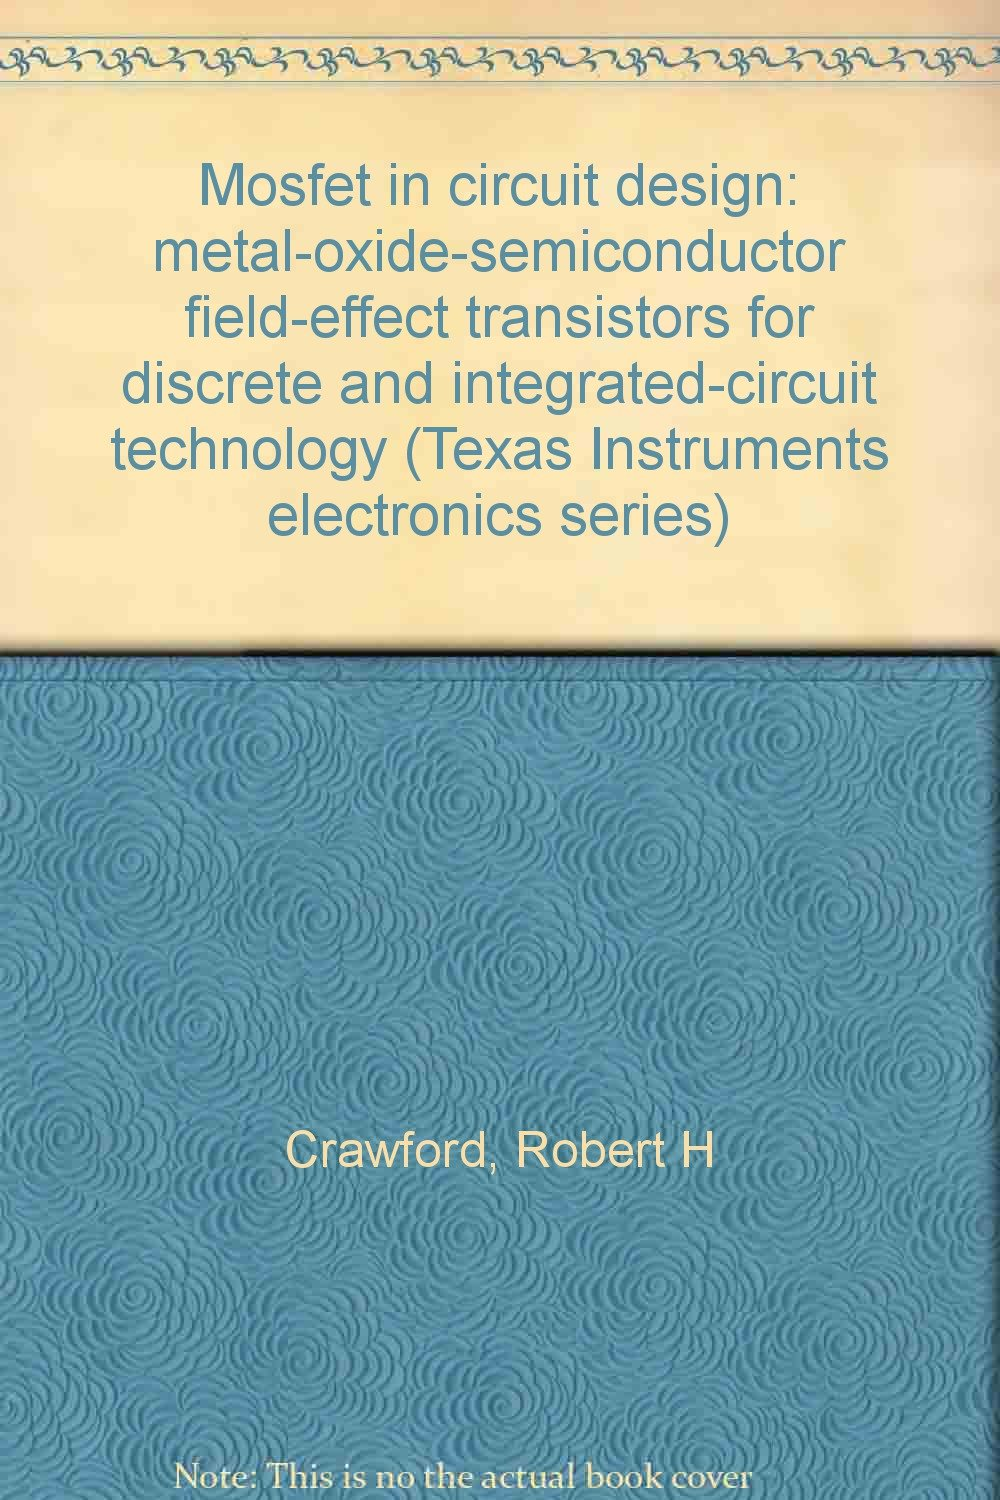 Mosfet In Circuit Design Metal Oxide Semiconductor Field Effect Transistors For Discrete And Integrated Technology Texas Instruments Electronics